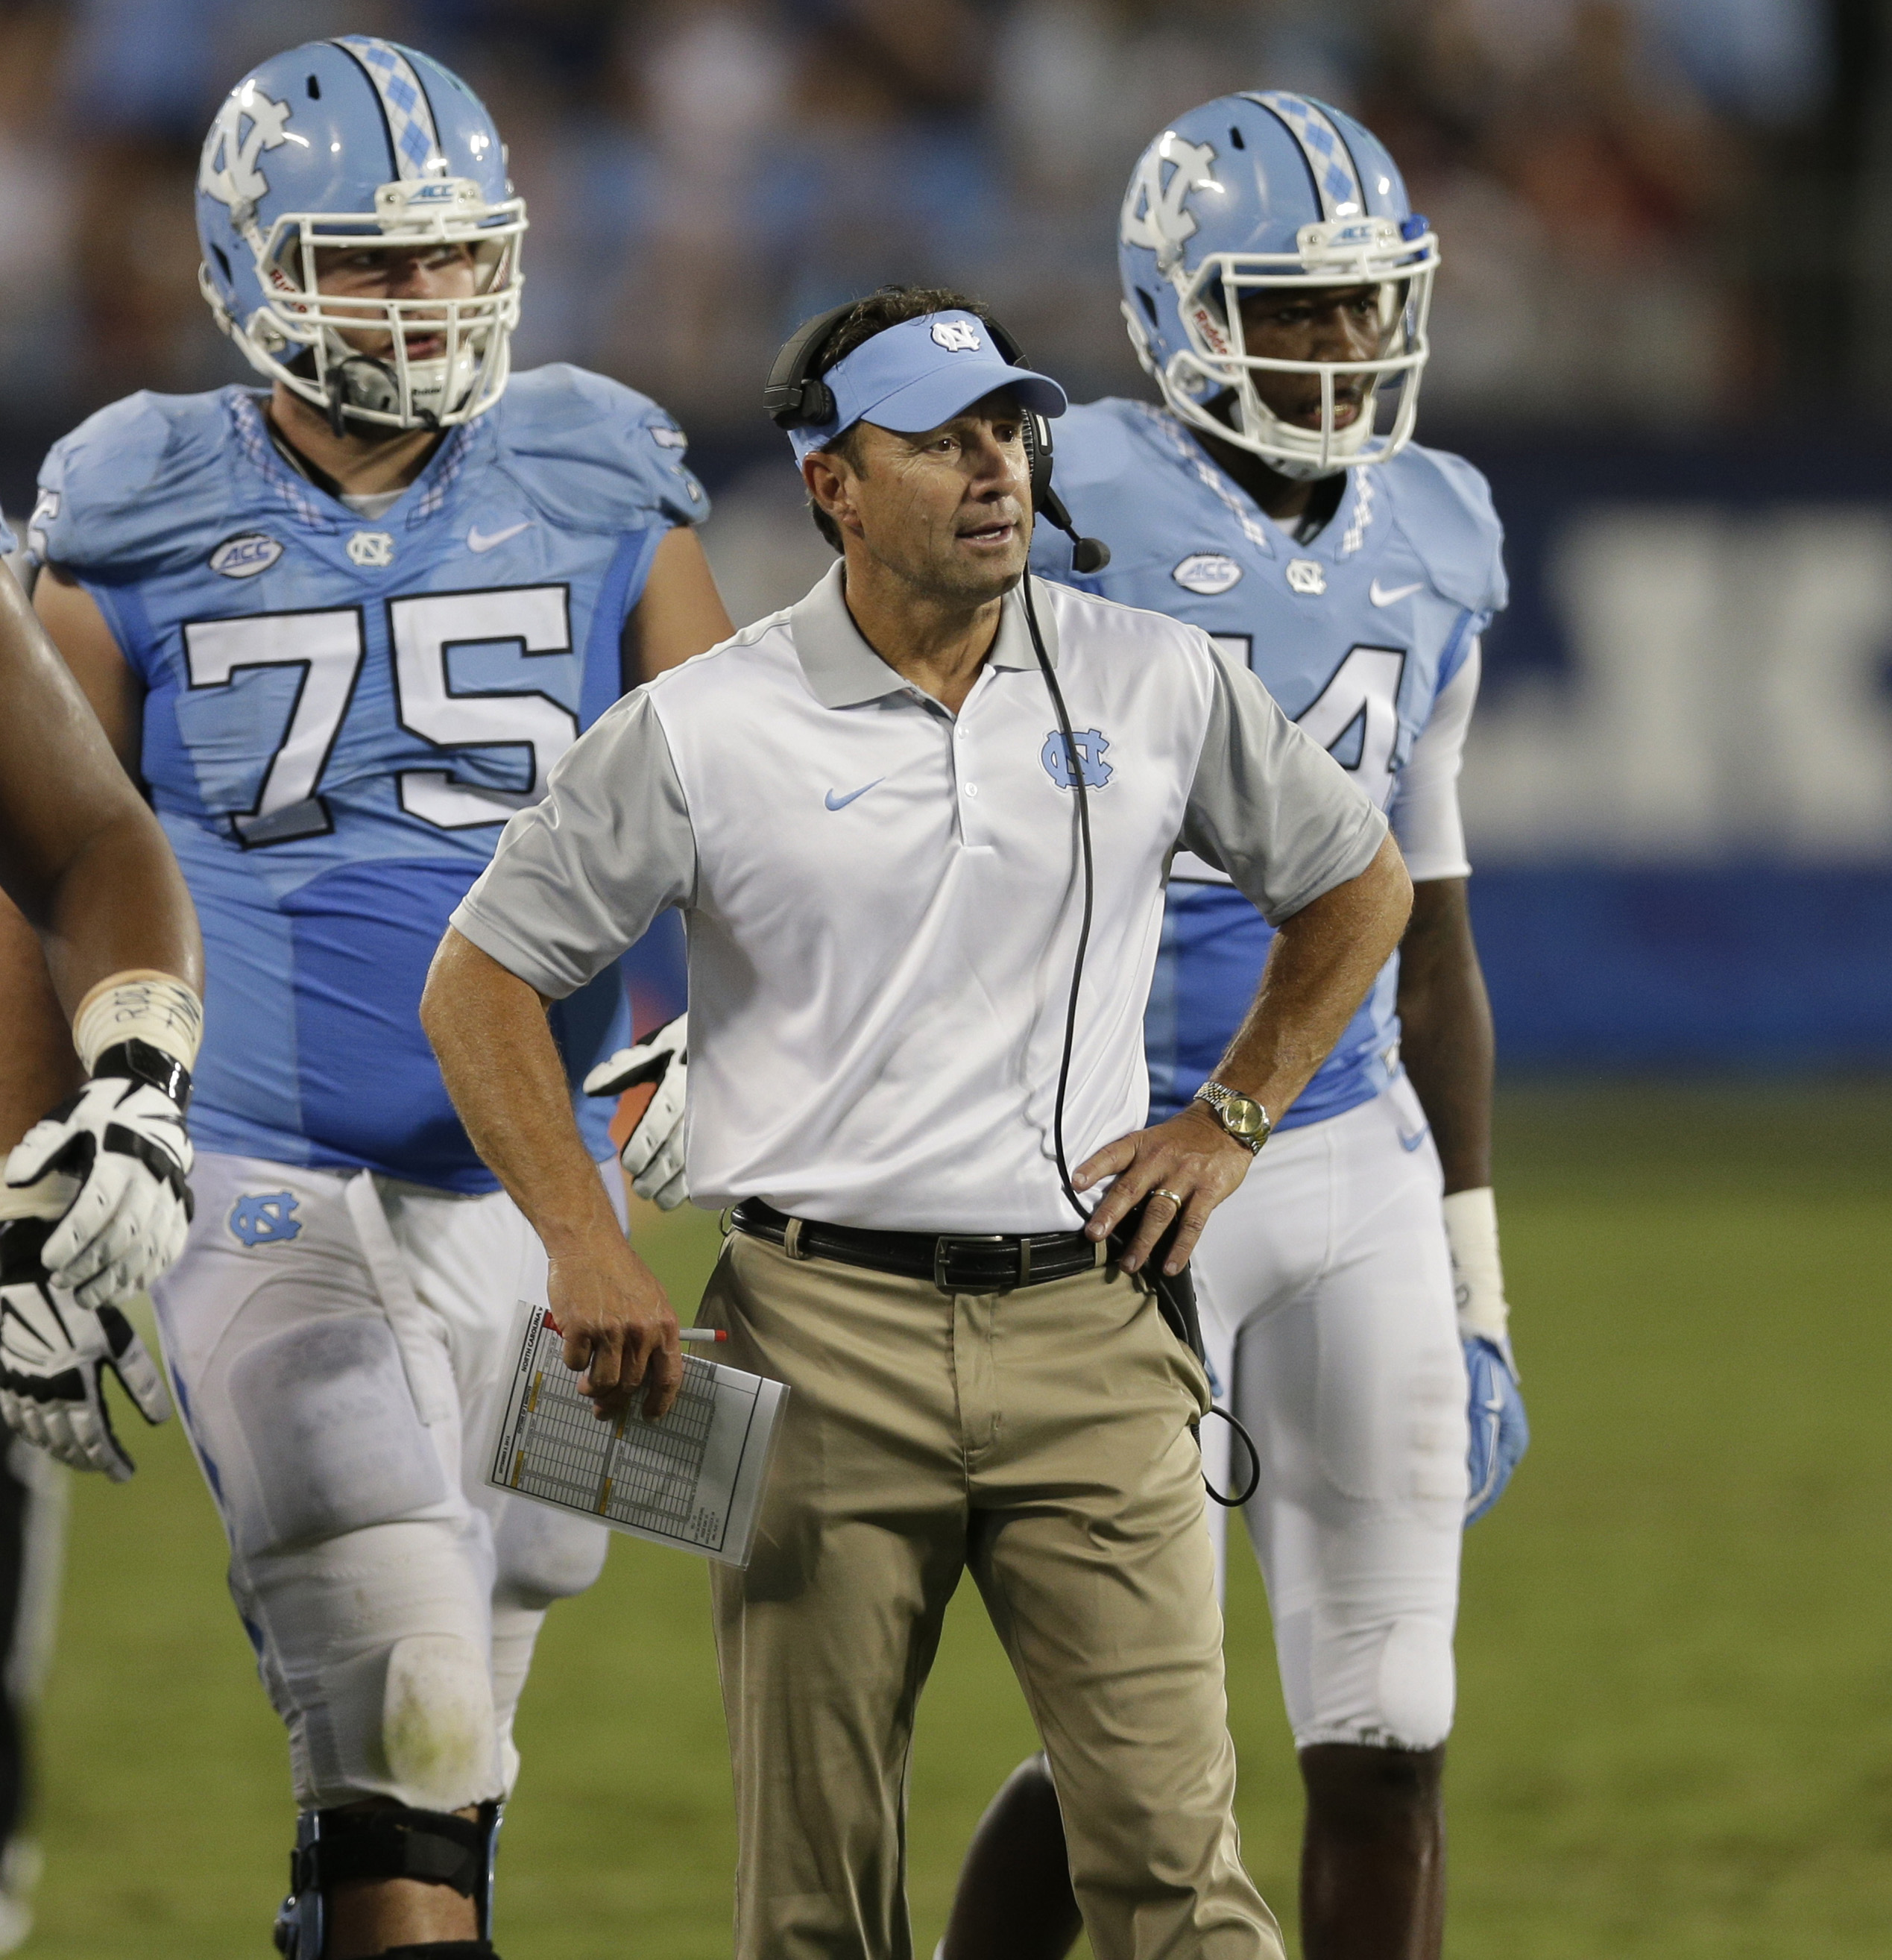 FILE - In this Sept. 3, 2015, file photo, North Carolina head coach Larry Fedora talks to his team during a timeout in the second half of an NCAA college football game against South Carolina in Charlotte, N.C. North Carolina's offense is rolling to big ya